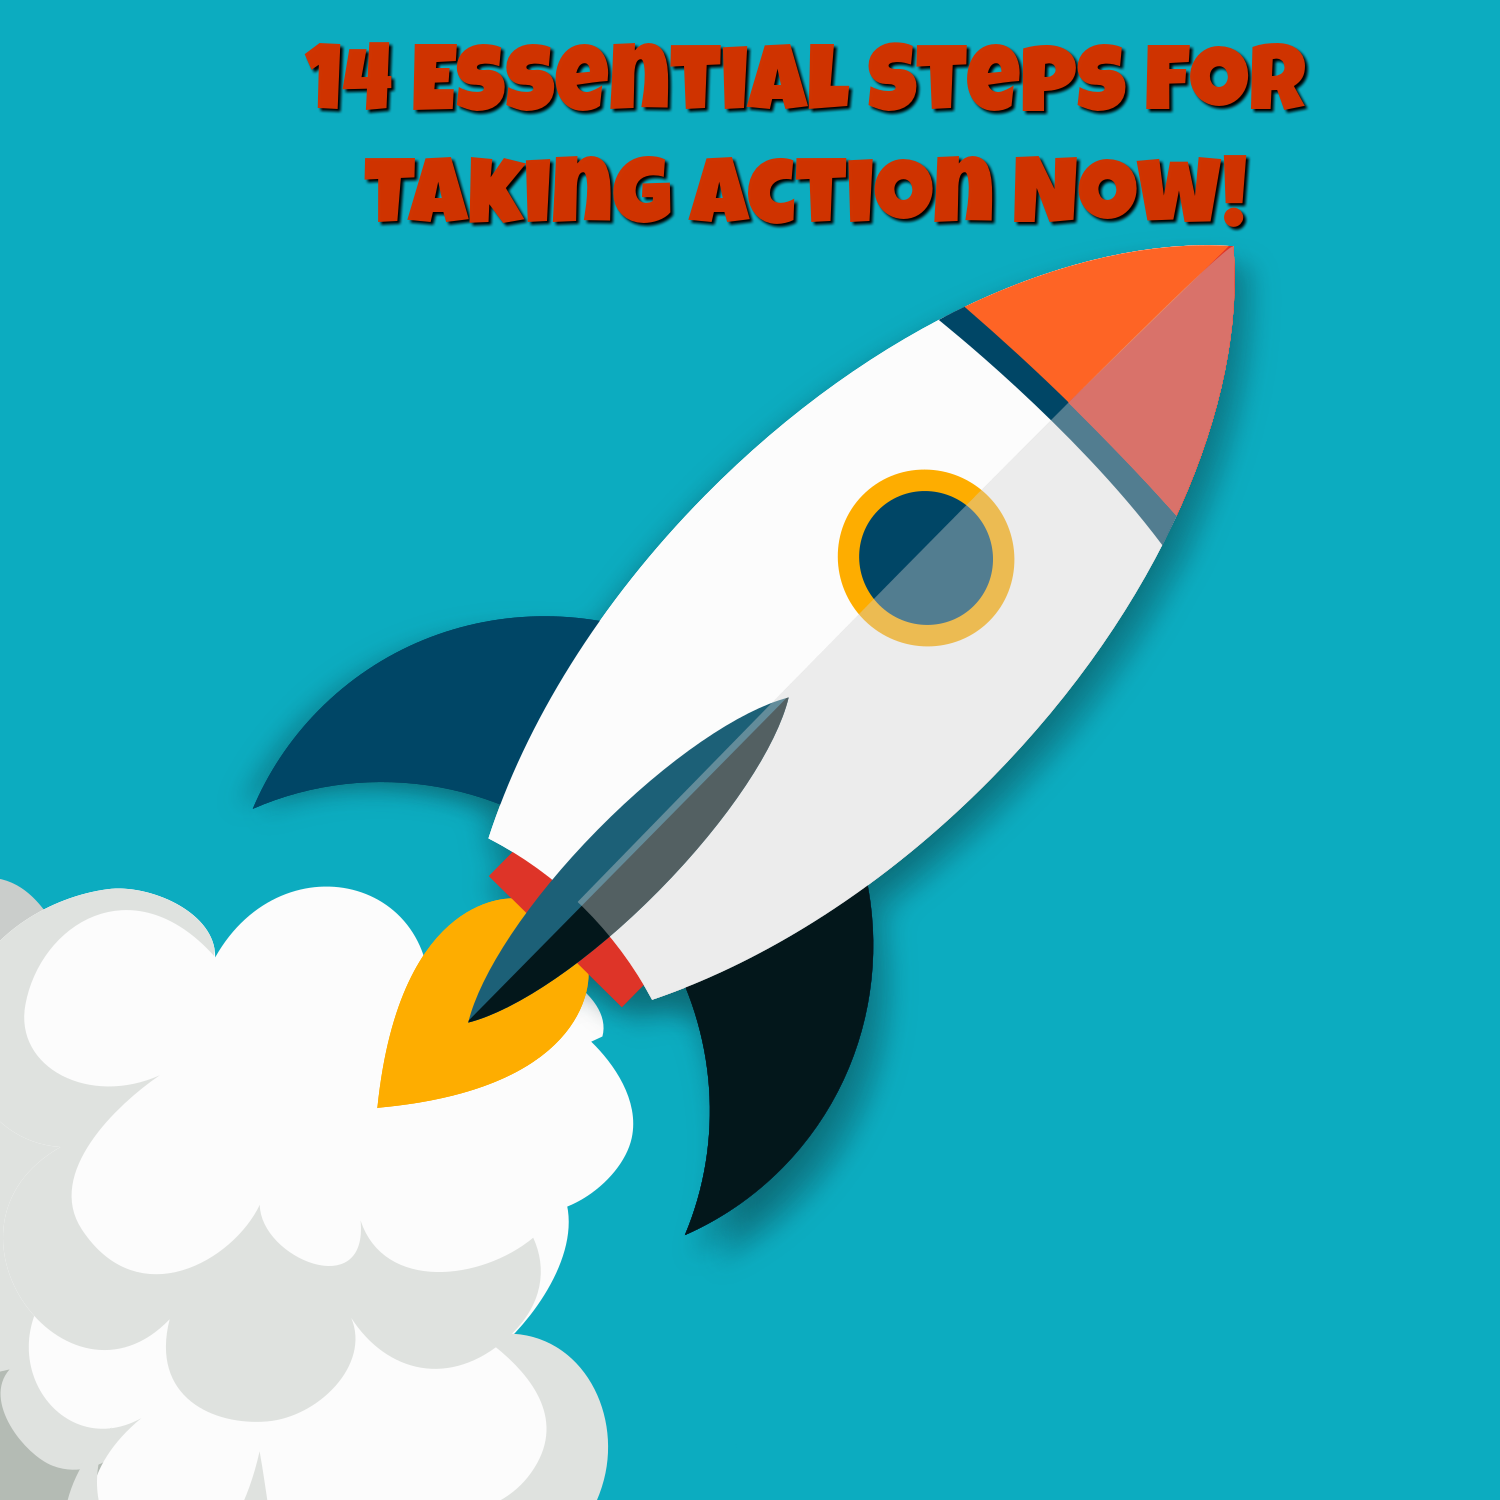 Action clipart take action.  essential steps for